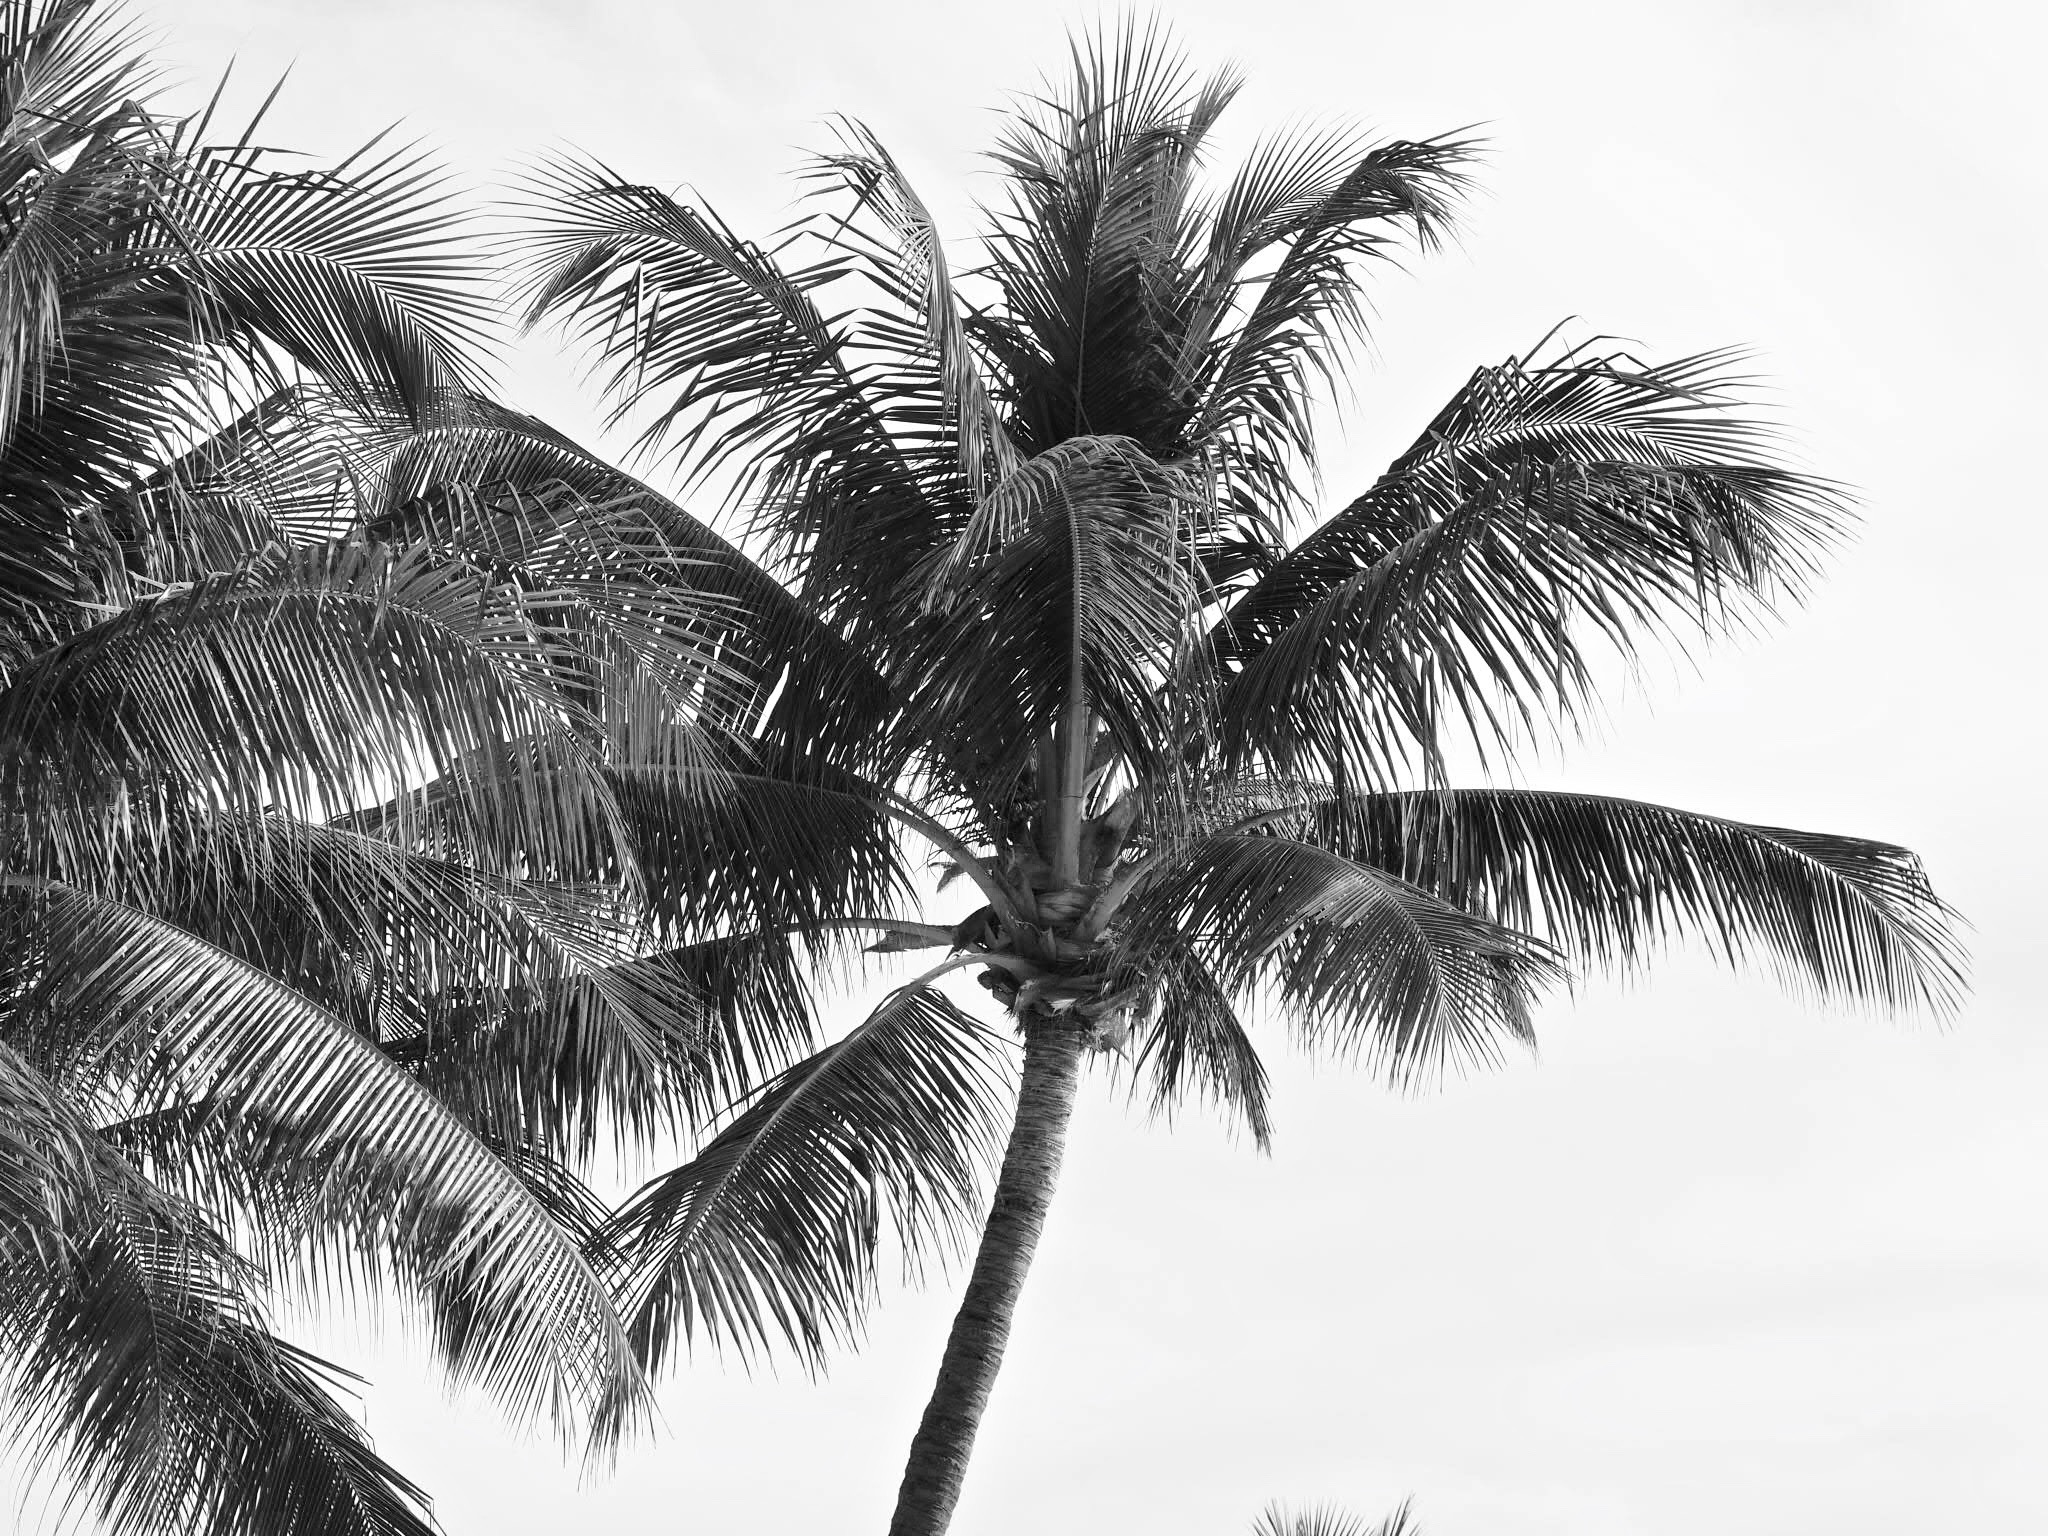 The beauty of the Palm